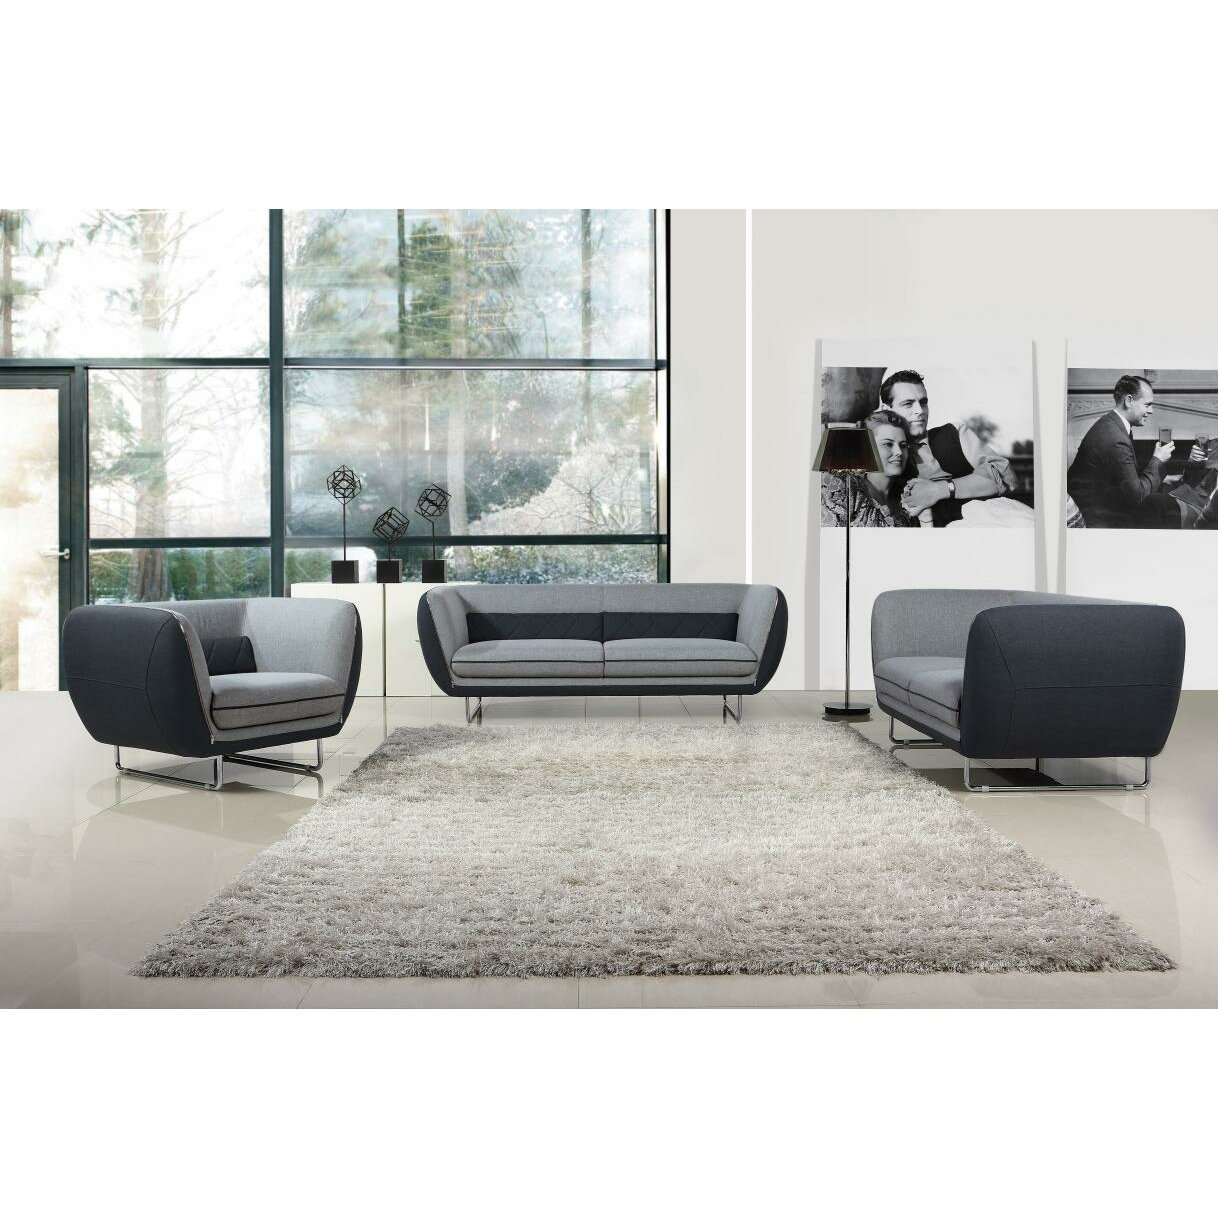 vig furniture divani casa vietta modern living room set fabio modern living room set